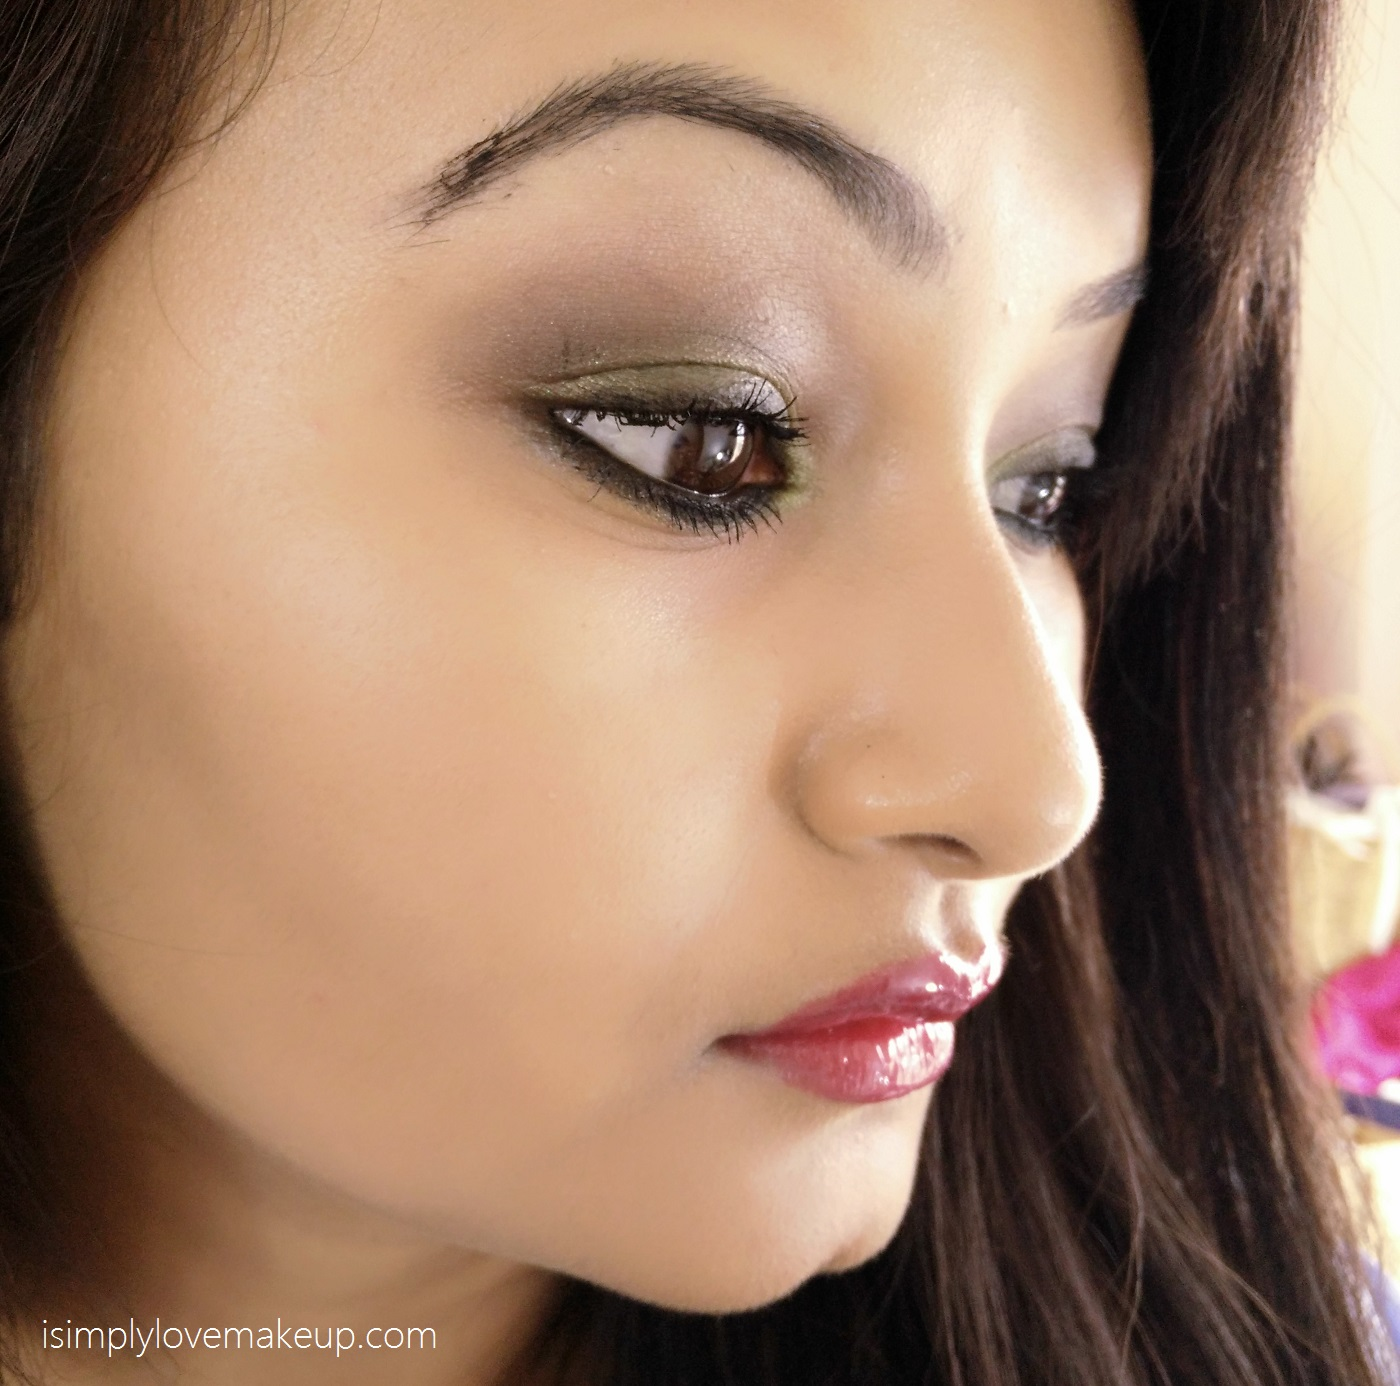 Makeup Products Used